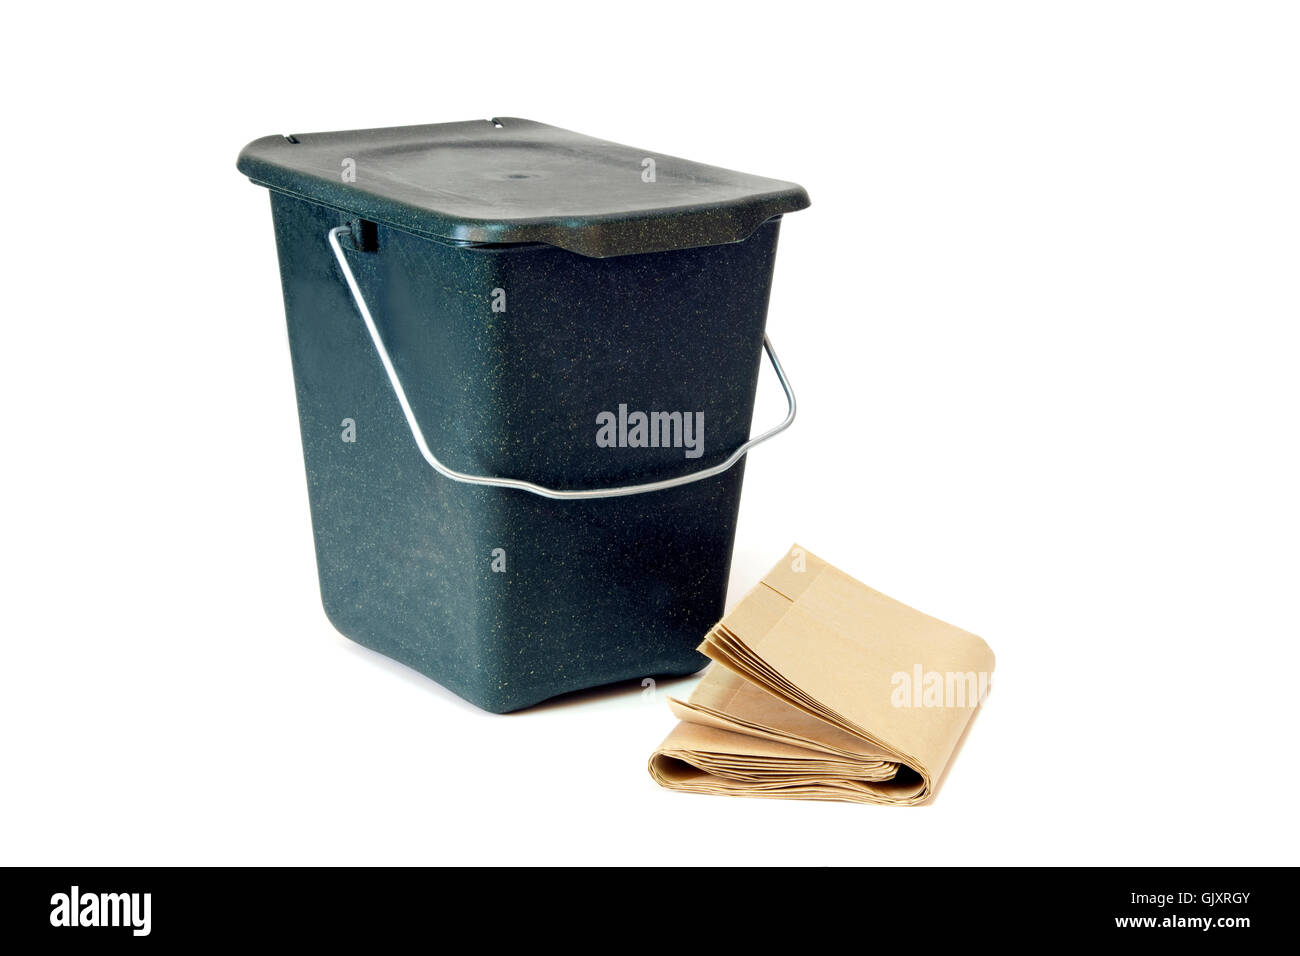 Compost trash can isolated on white background - Stock Image